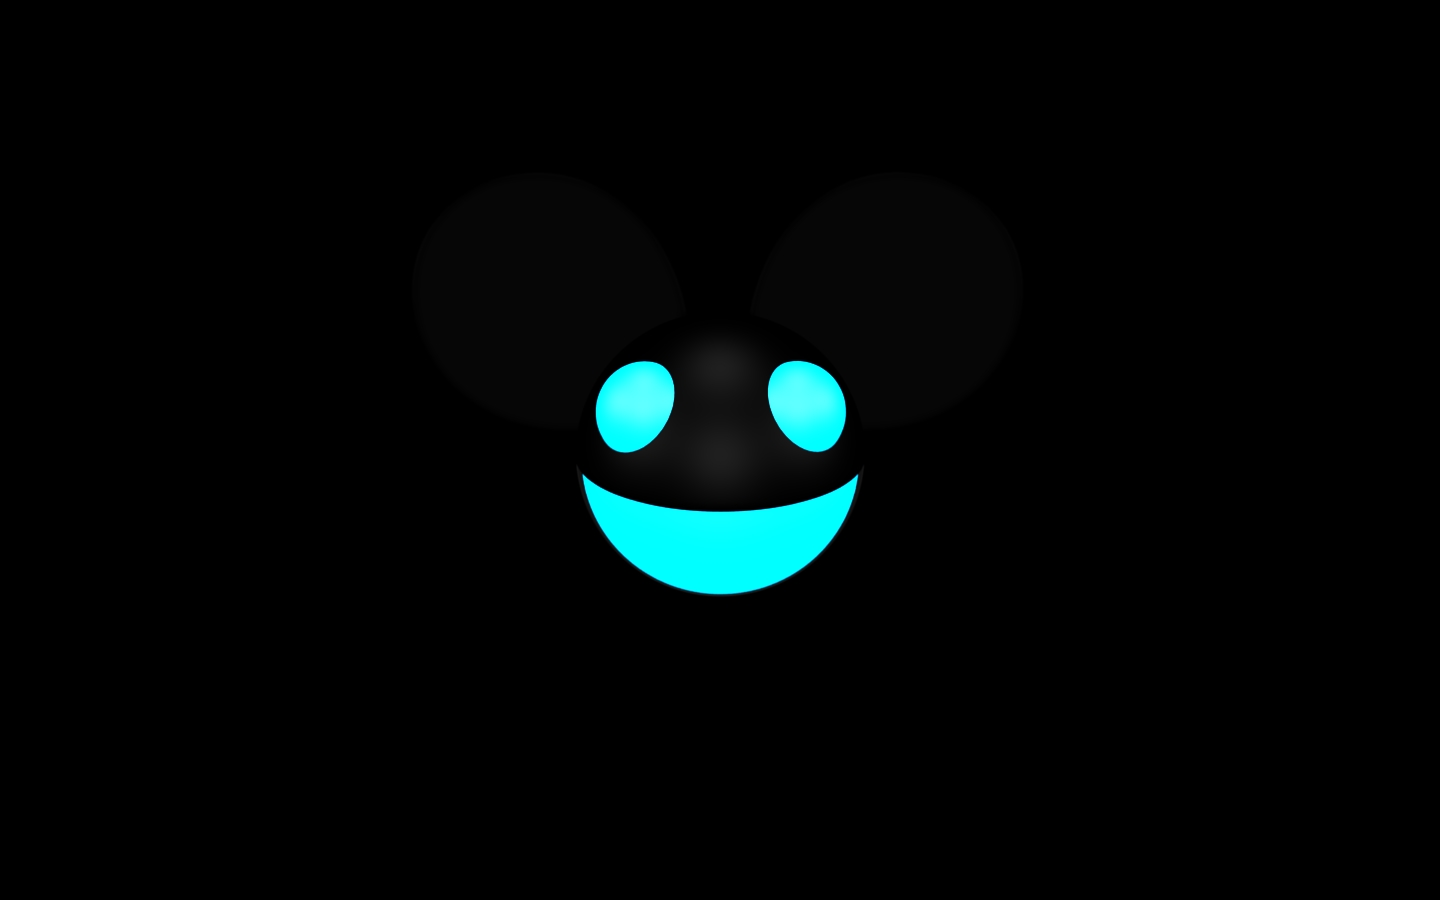 Deadmau5 Wallpaper; Deadmau5 Wallpaper; Deadmau5 Wallpaper ...